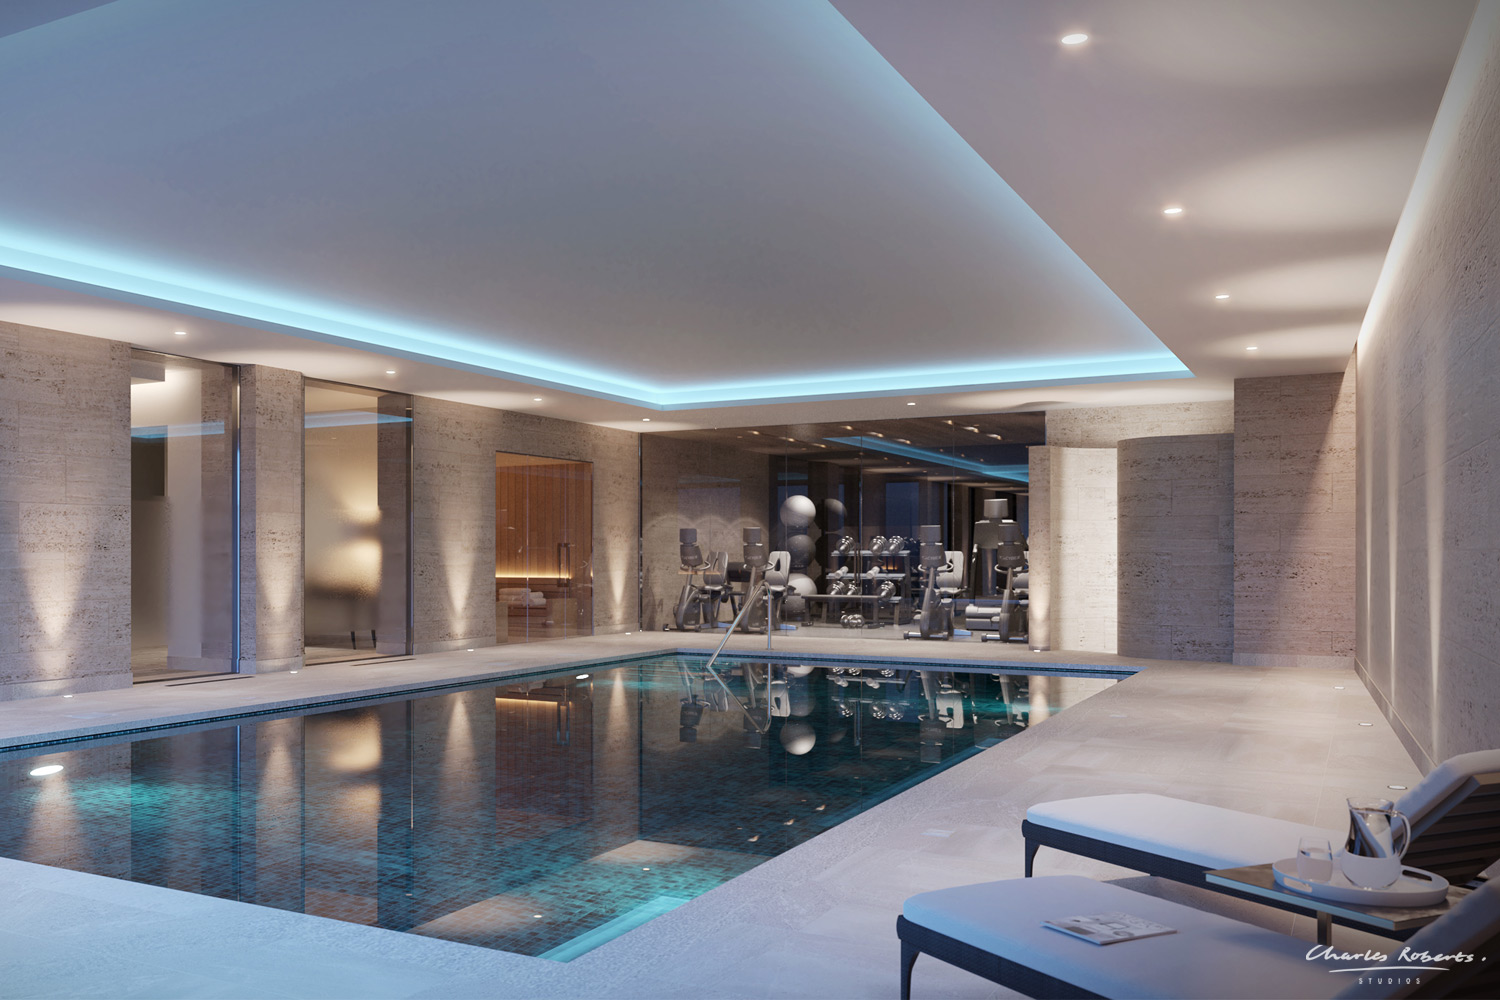 Artists-impression-of-a-new-luxury-pool-and-spa.jpg